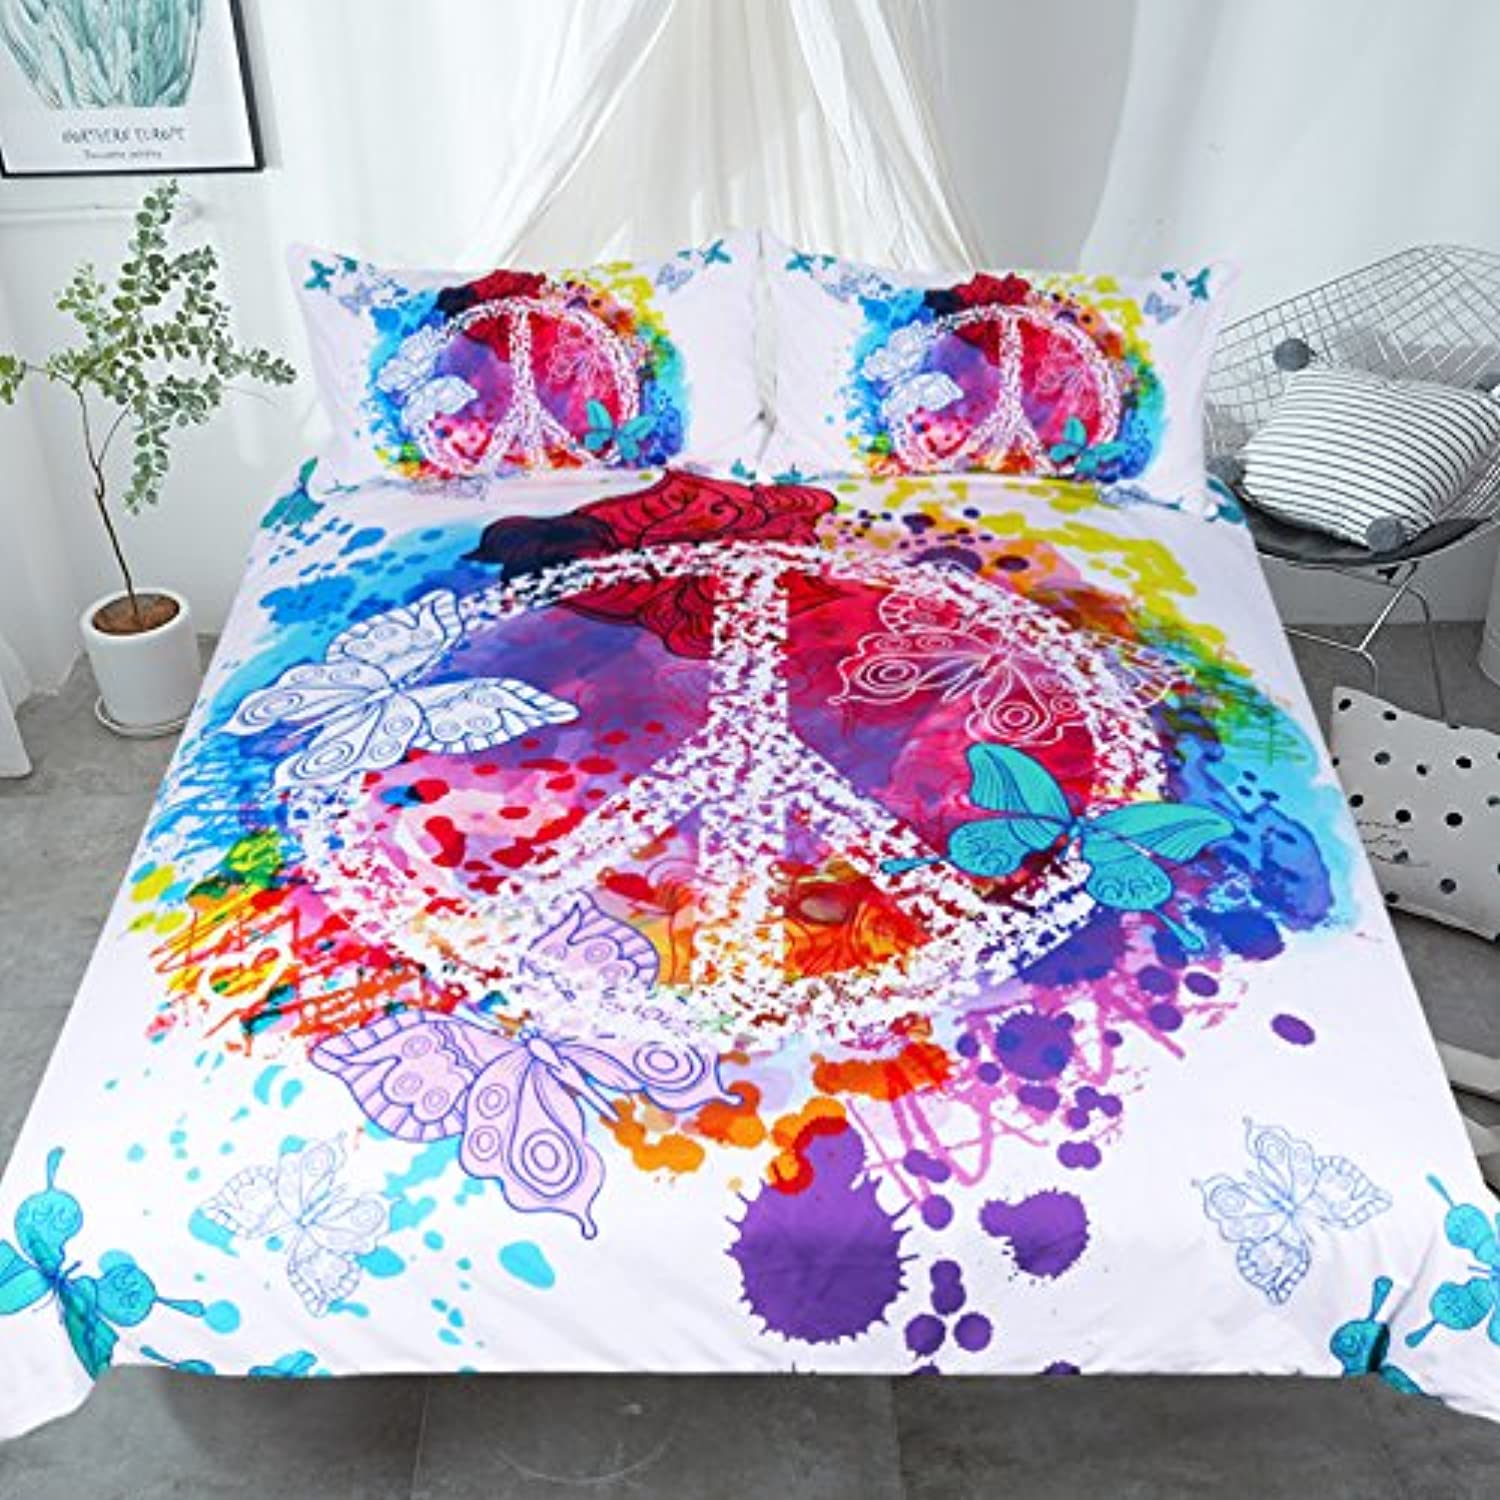 Sleepwish Hippie Psychedelic Butterfly Duvet Cover Peace Sign Bedding Boys Girls Watercolor Modern colorful Art Bedspread (King)